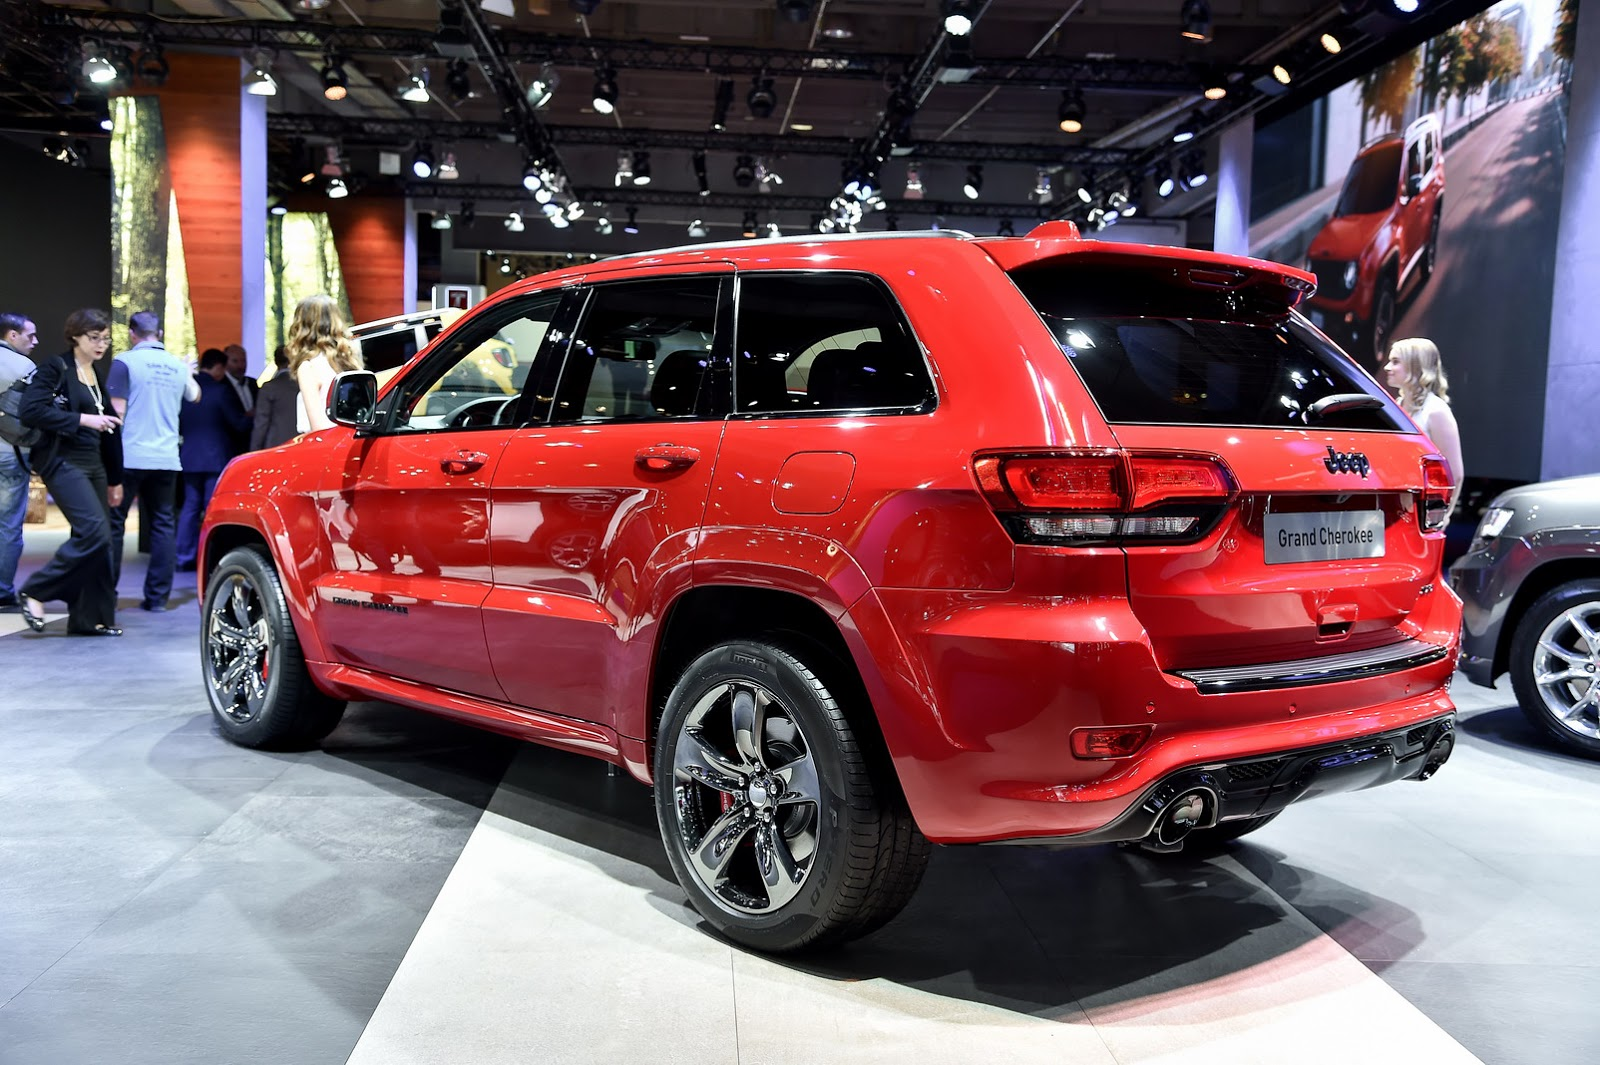 Chrysler trademarks quot trackhawk quot spurs crazy rumor for jeep grand cherokee hellcat